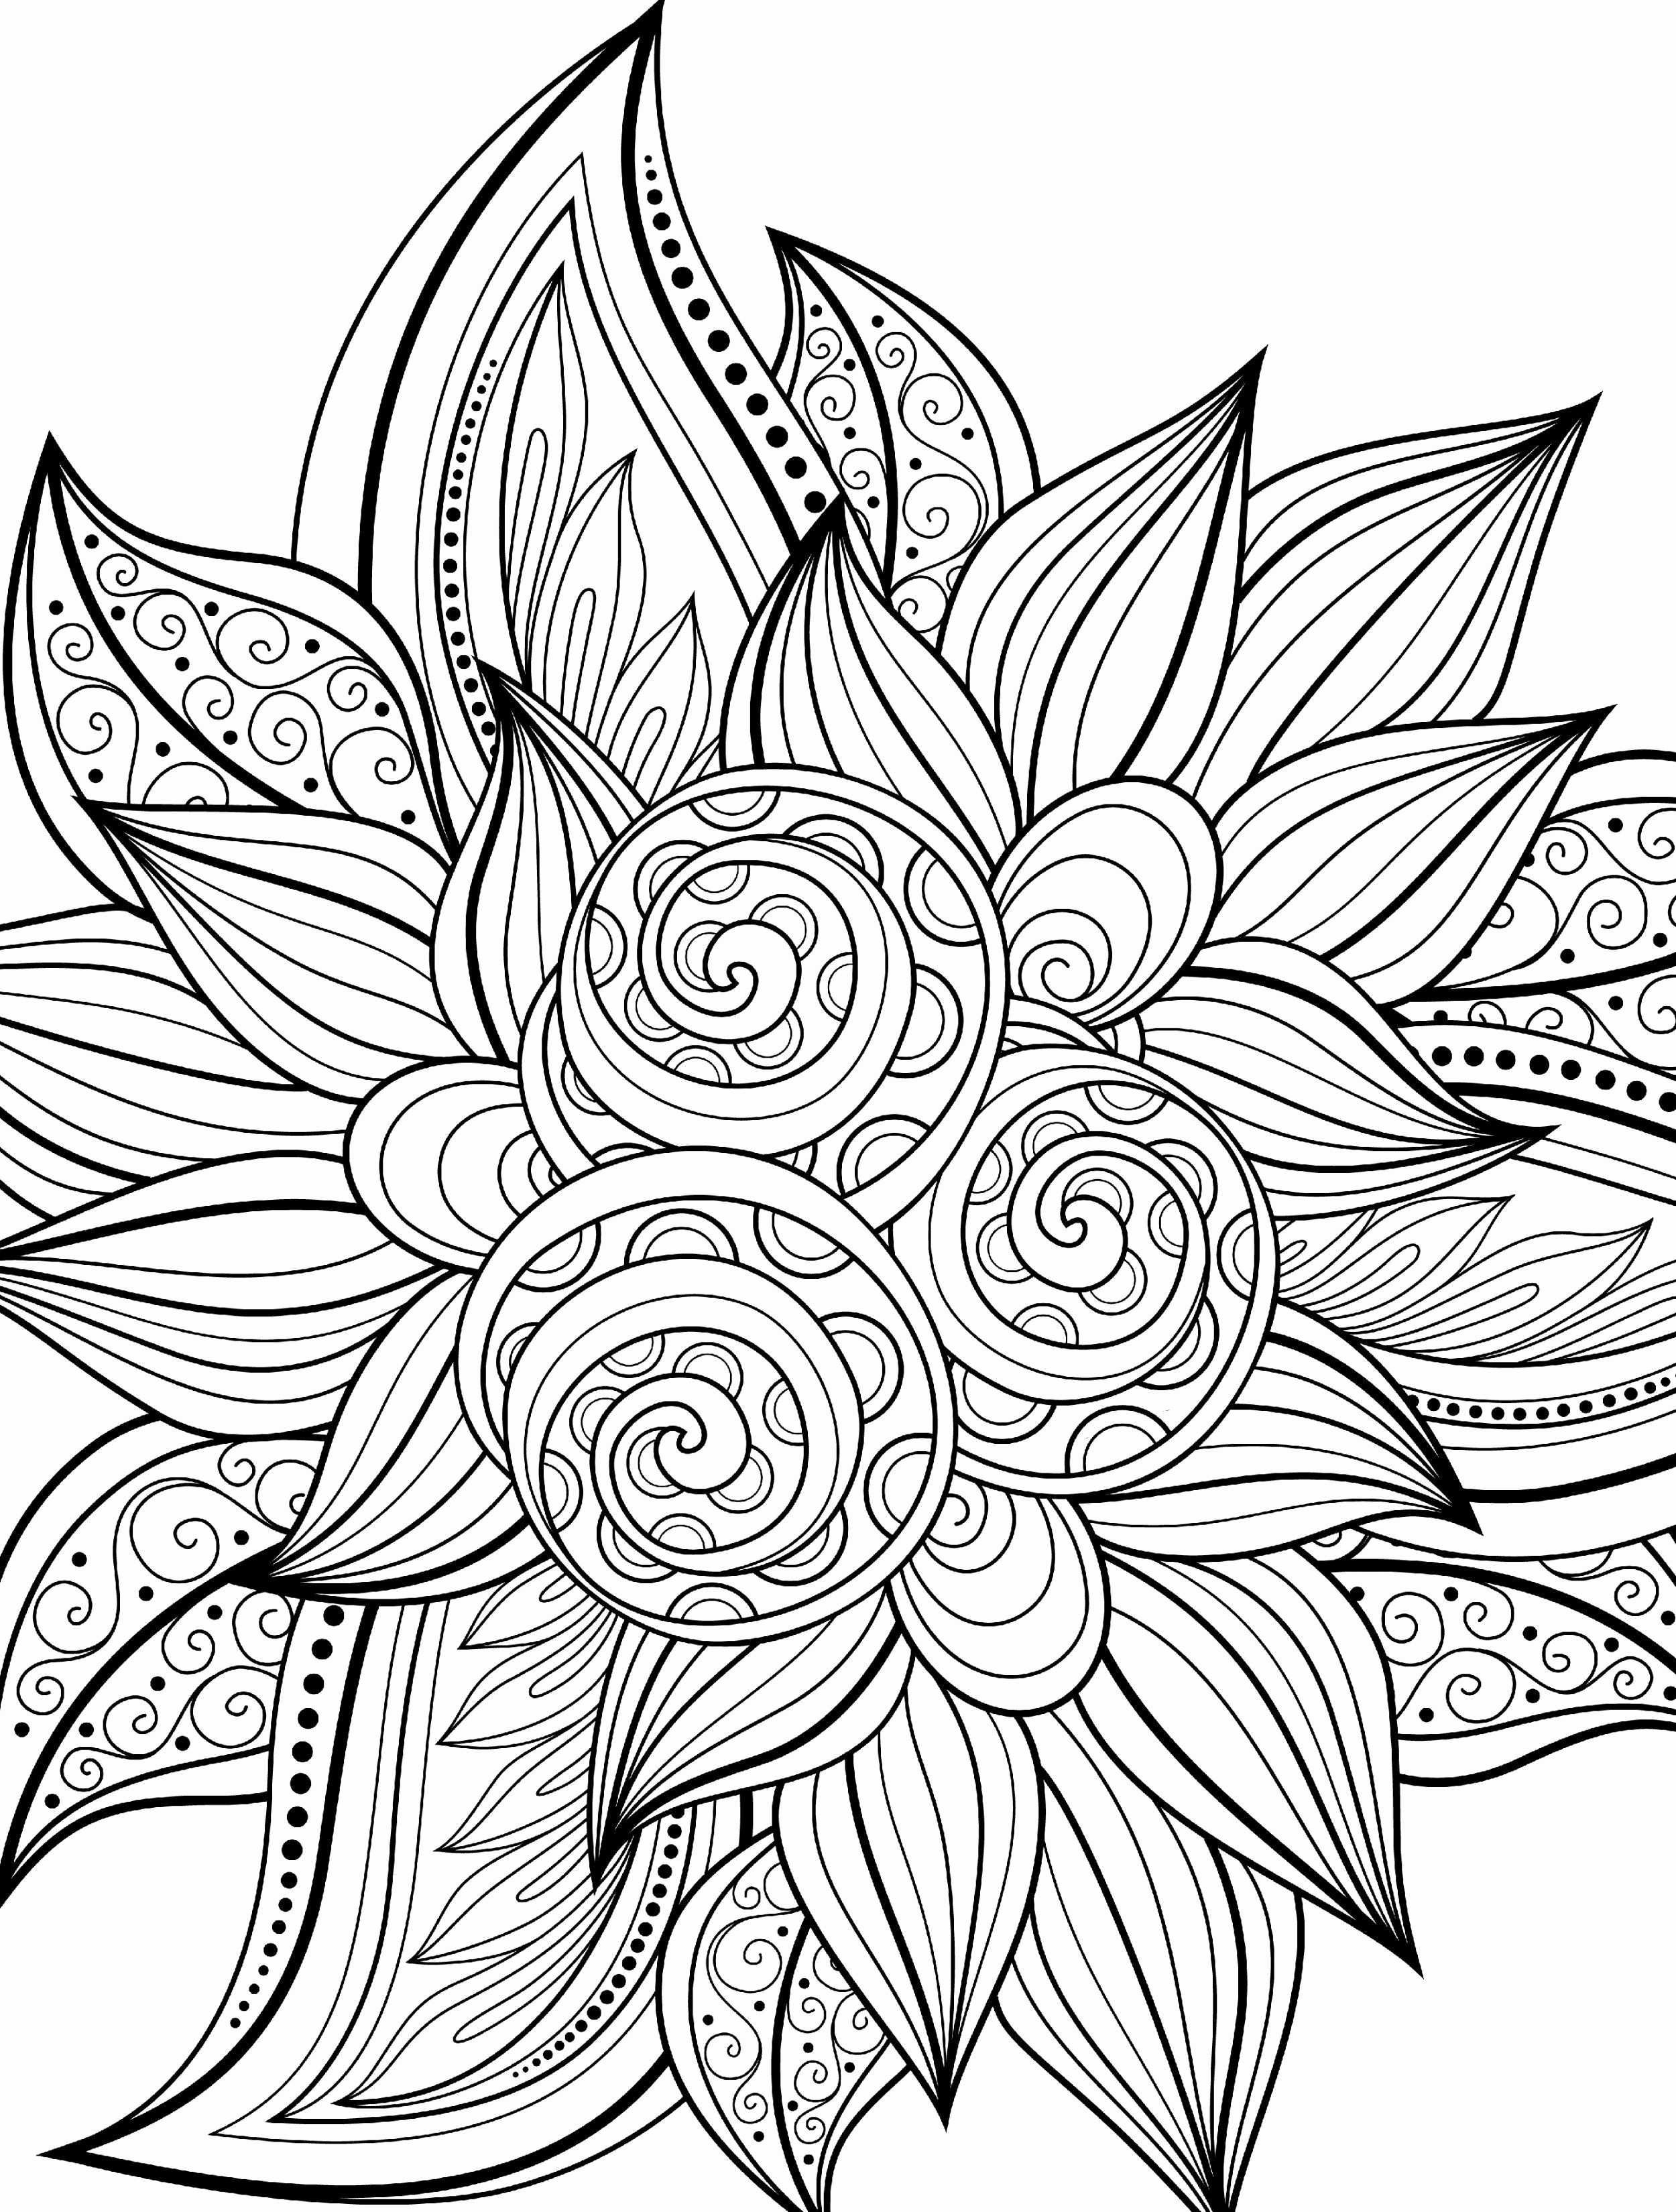 Best ideas about Small Adult Coloring Books . Save or Pin Small Adult Coloring Books Awesome Best Small Printable Now.